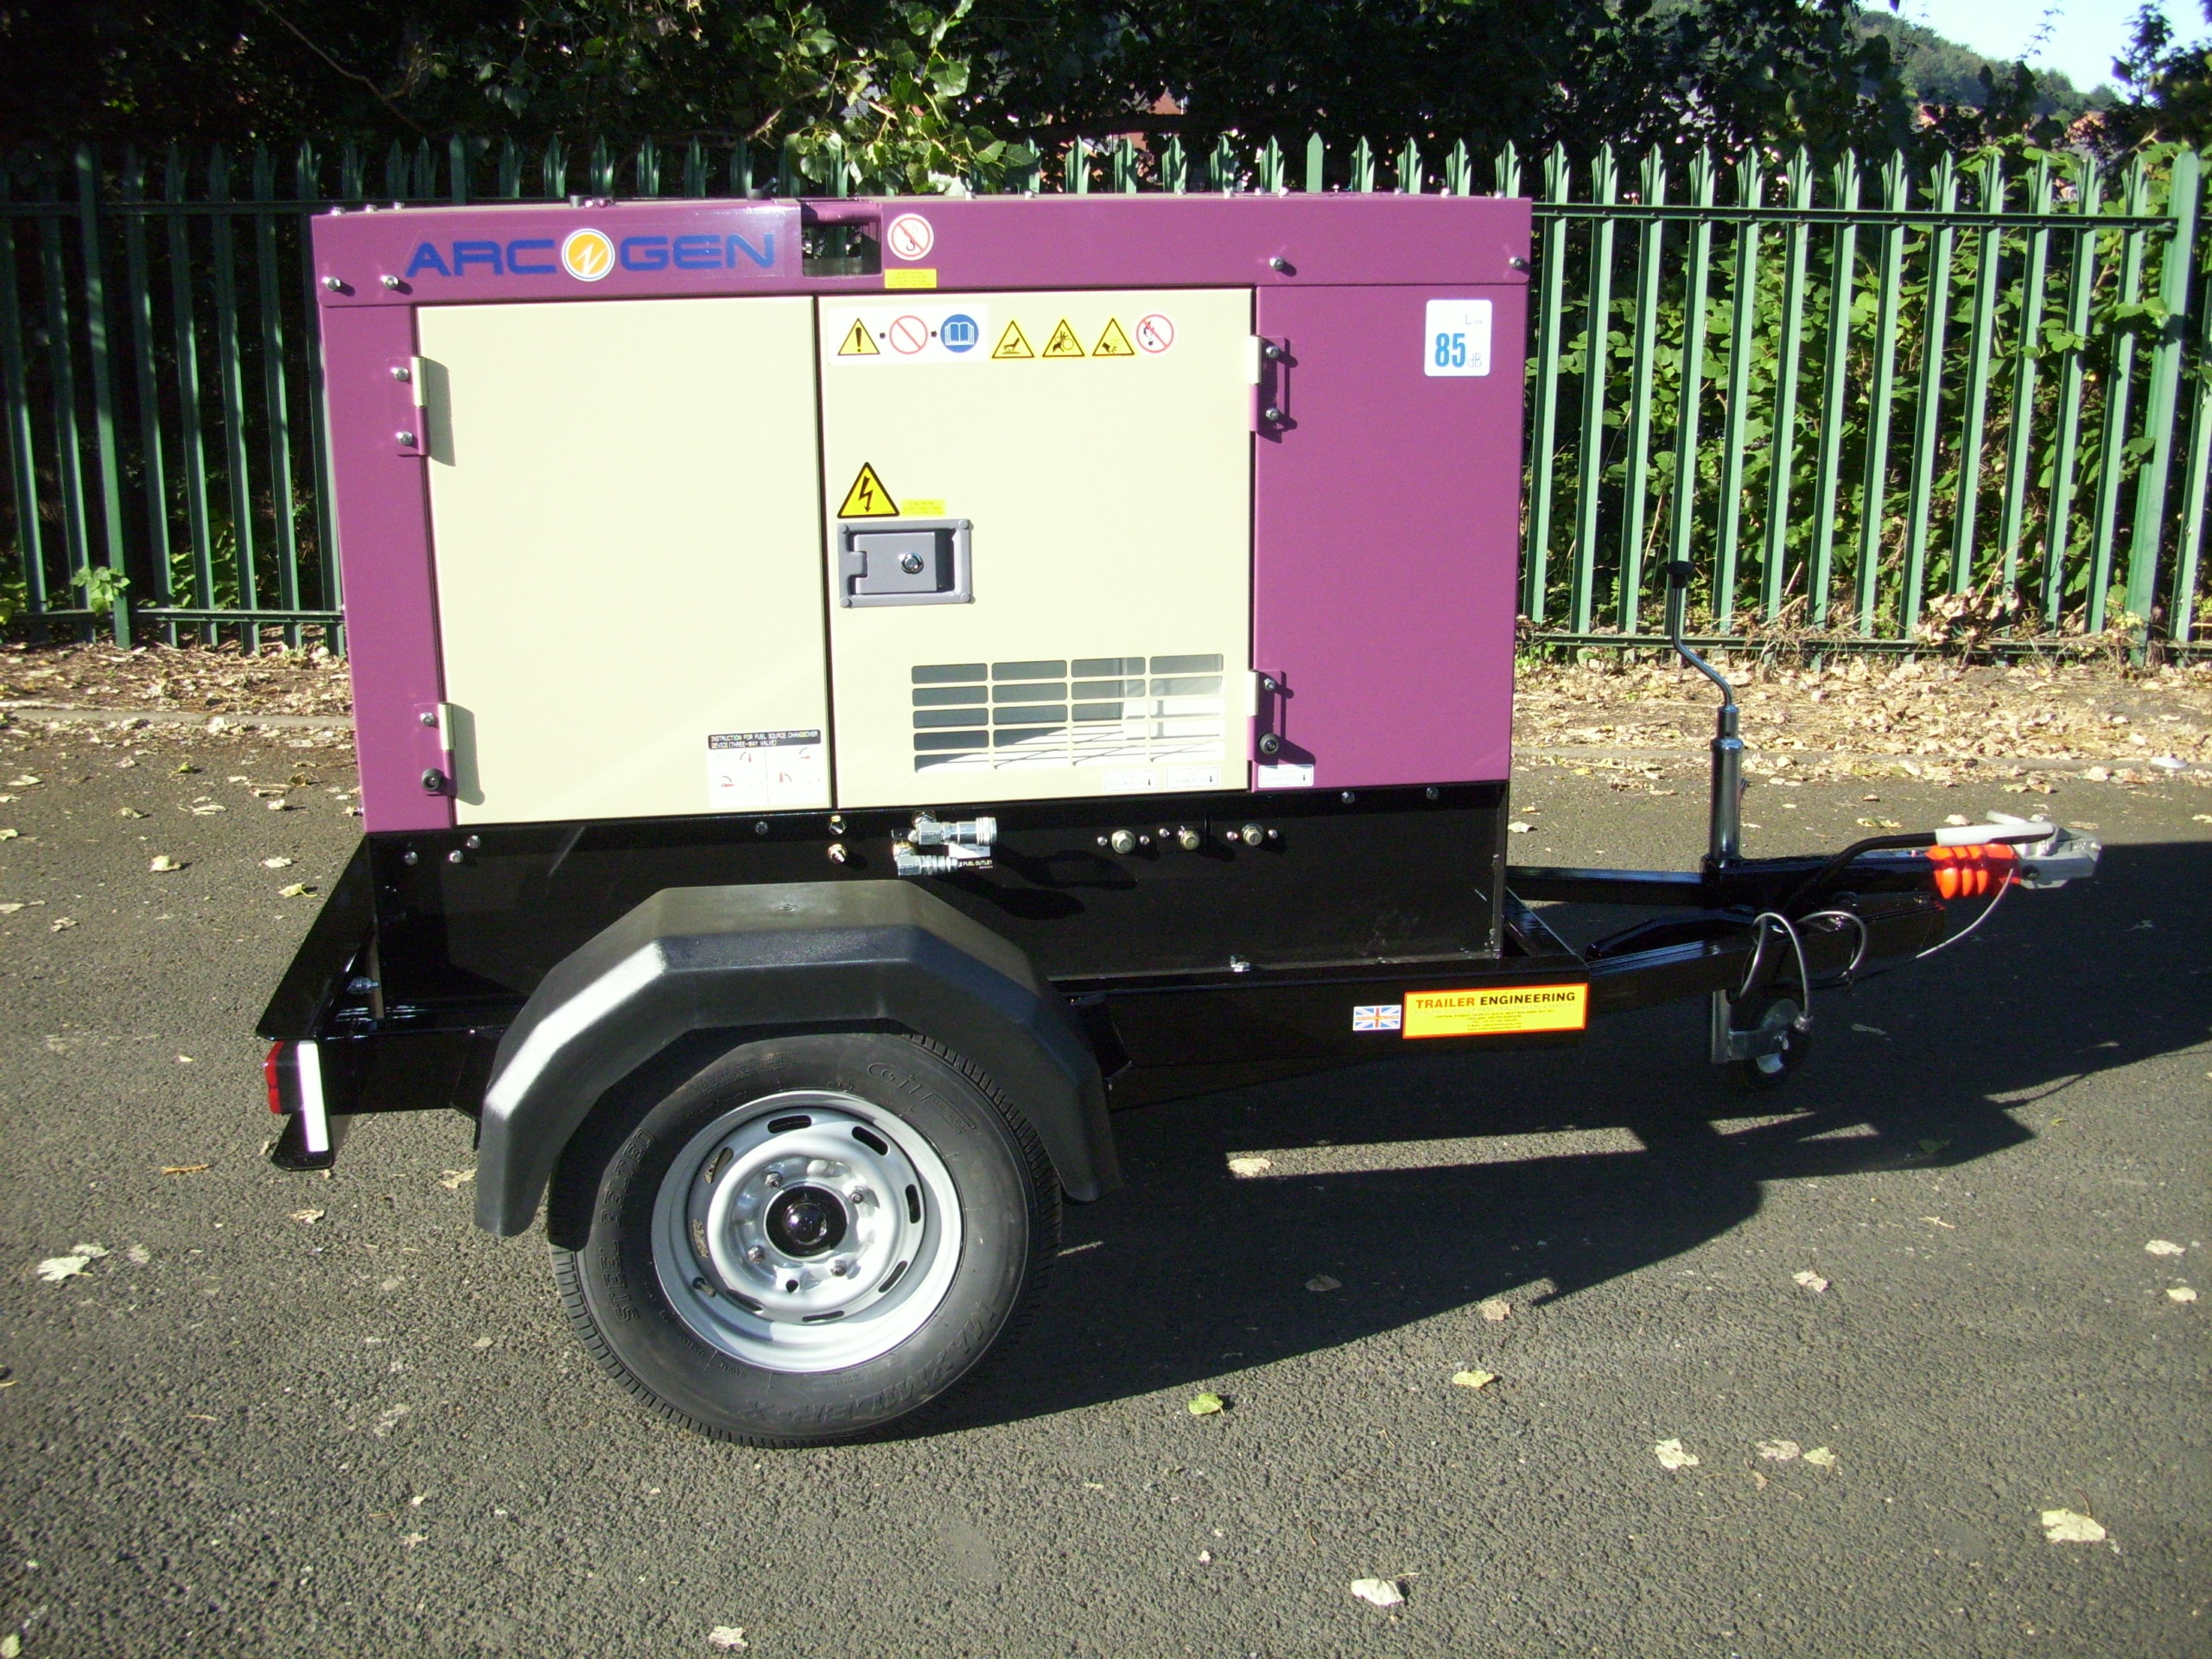 100 2576 scaled Bespoke Generator Trailer Trailer Engineering